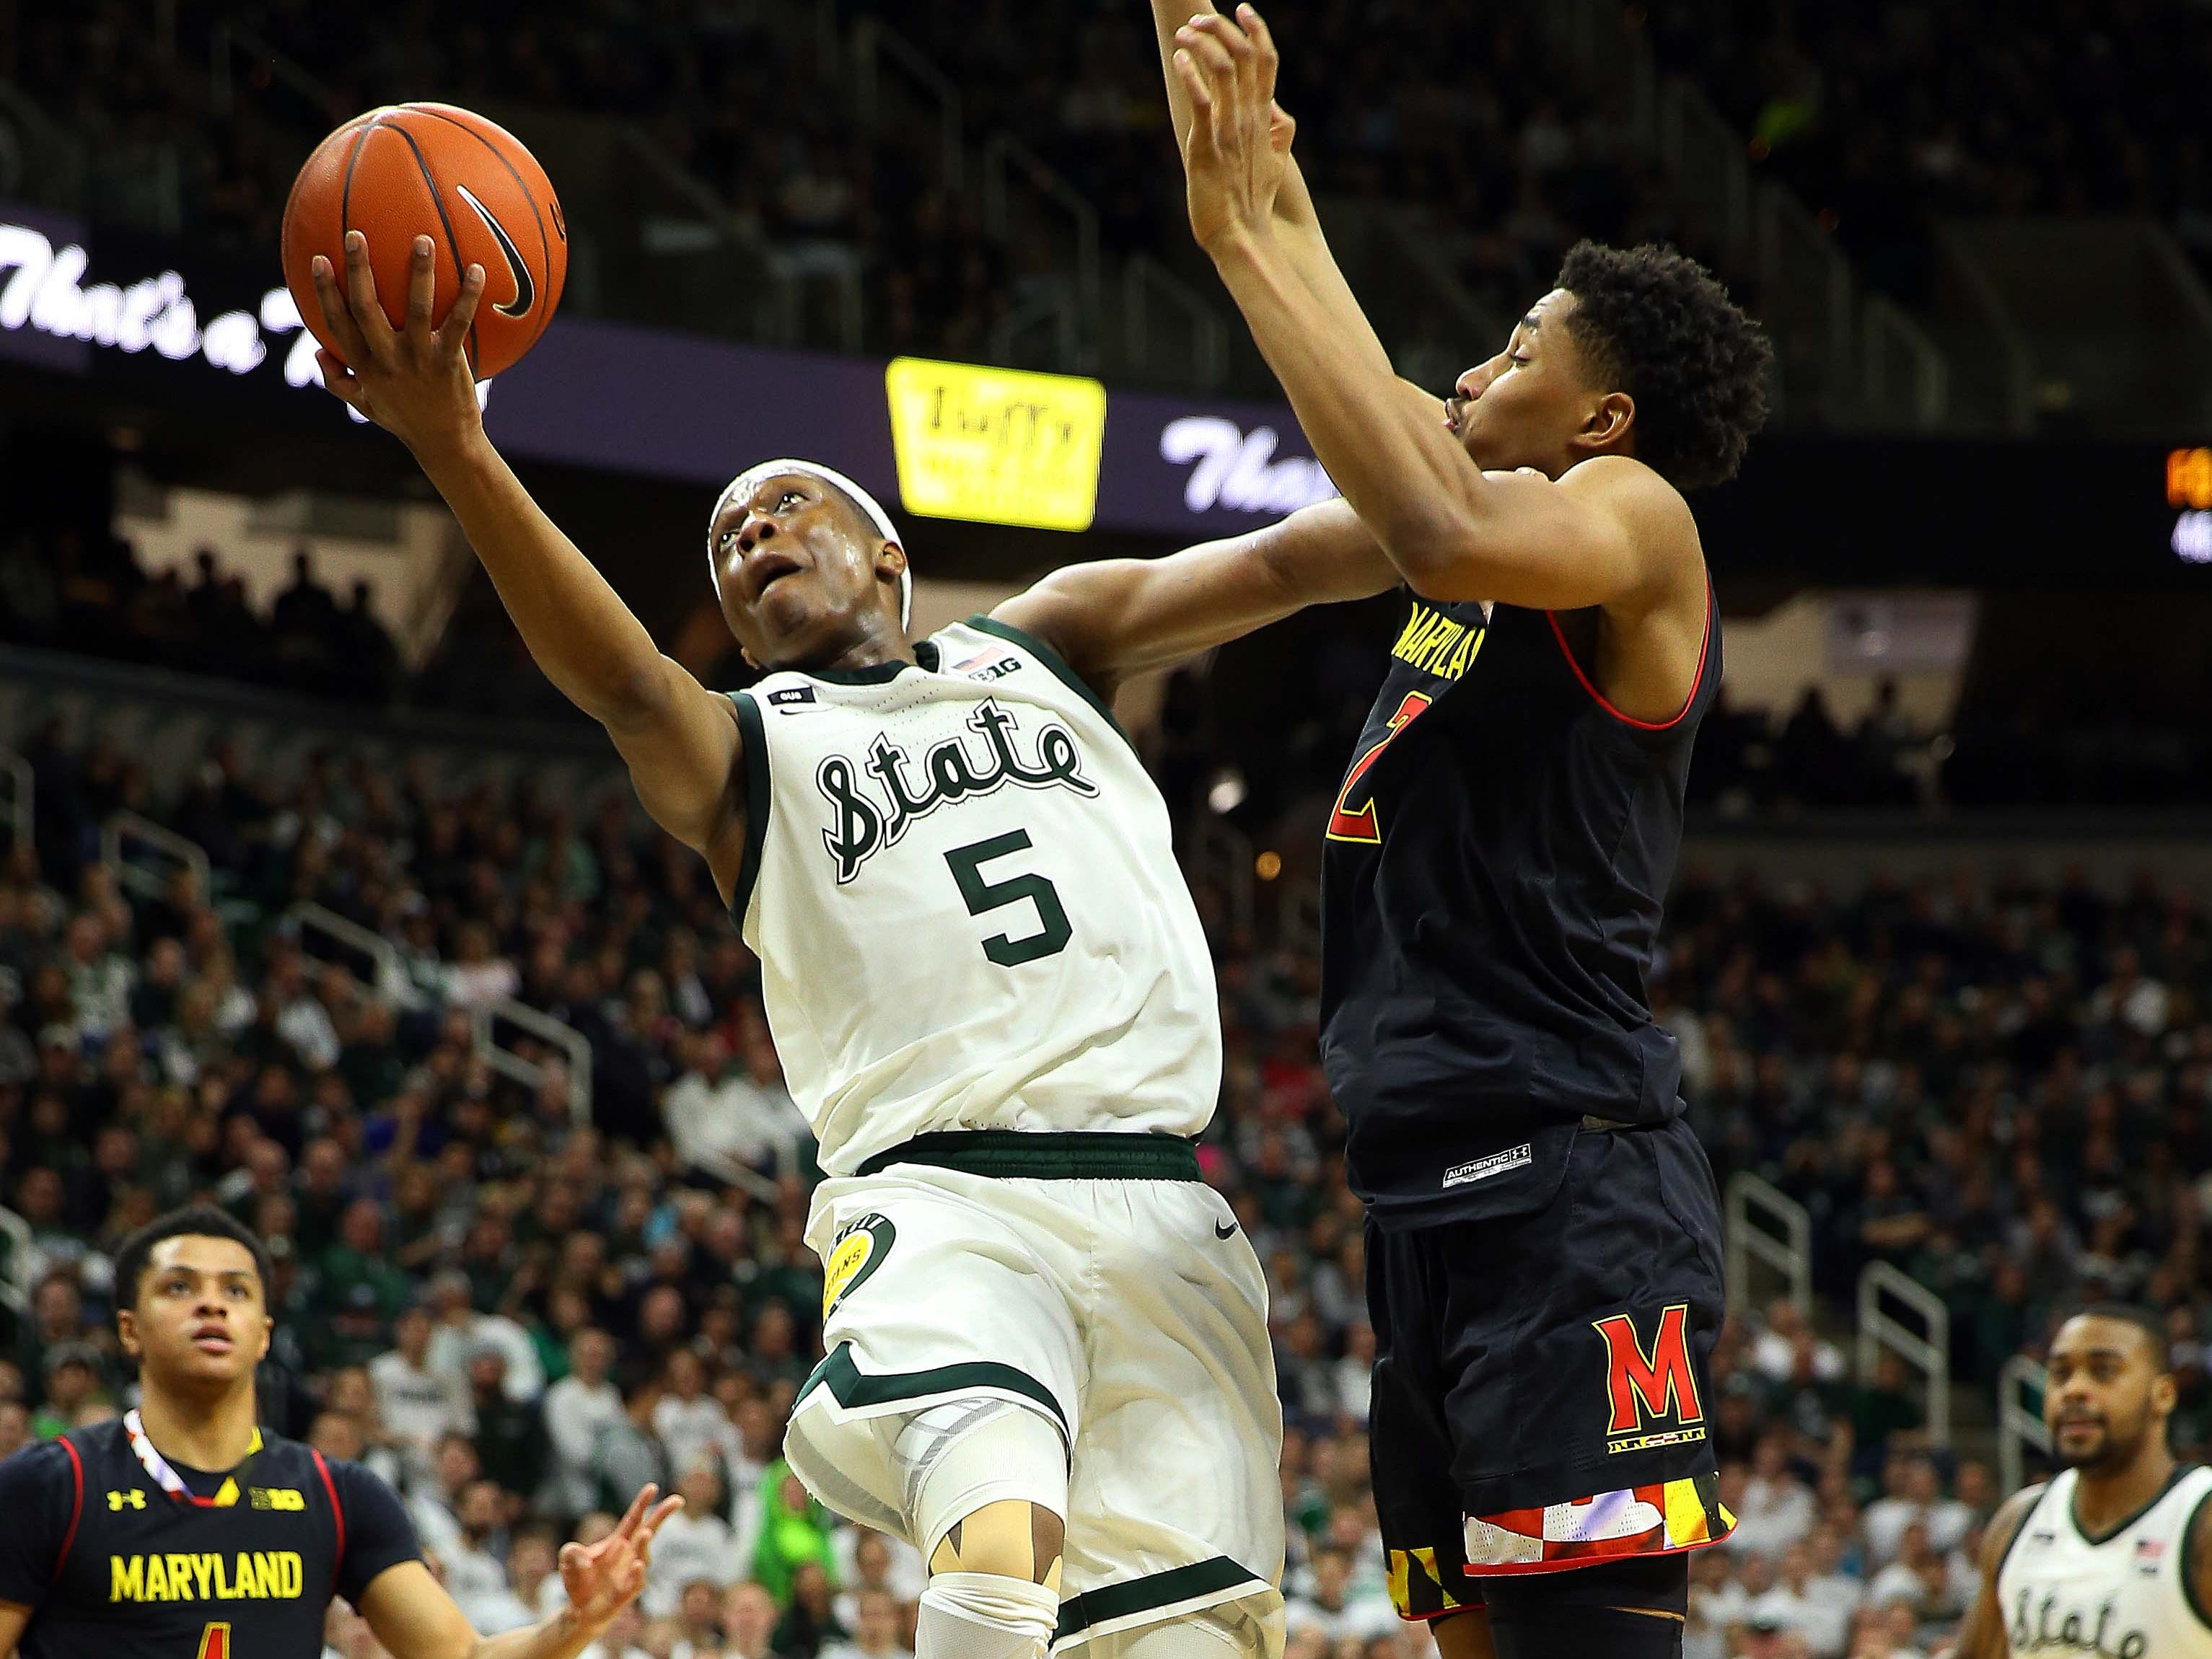 Michigan State Spartans guard Cassius Winston (5) drives to the basket against Maryland Terrapins guard Aaron Wiggins (2) during the first half of a game at the Breslin Center.